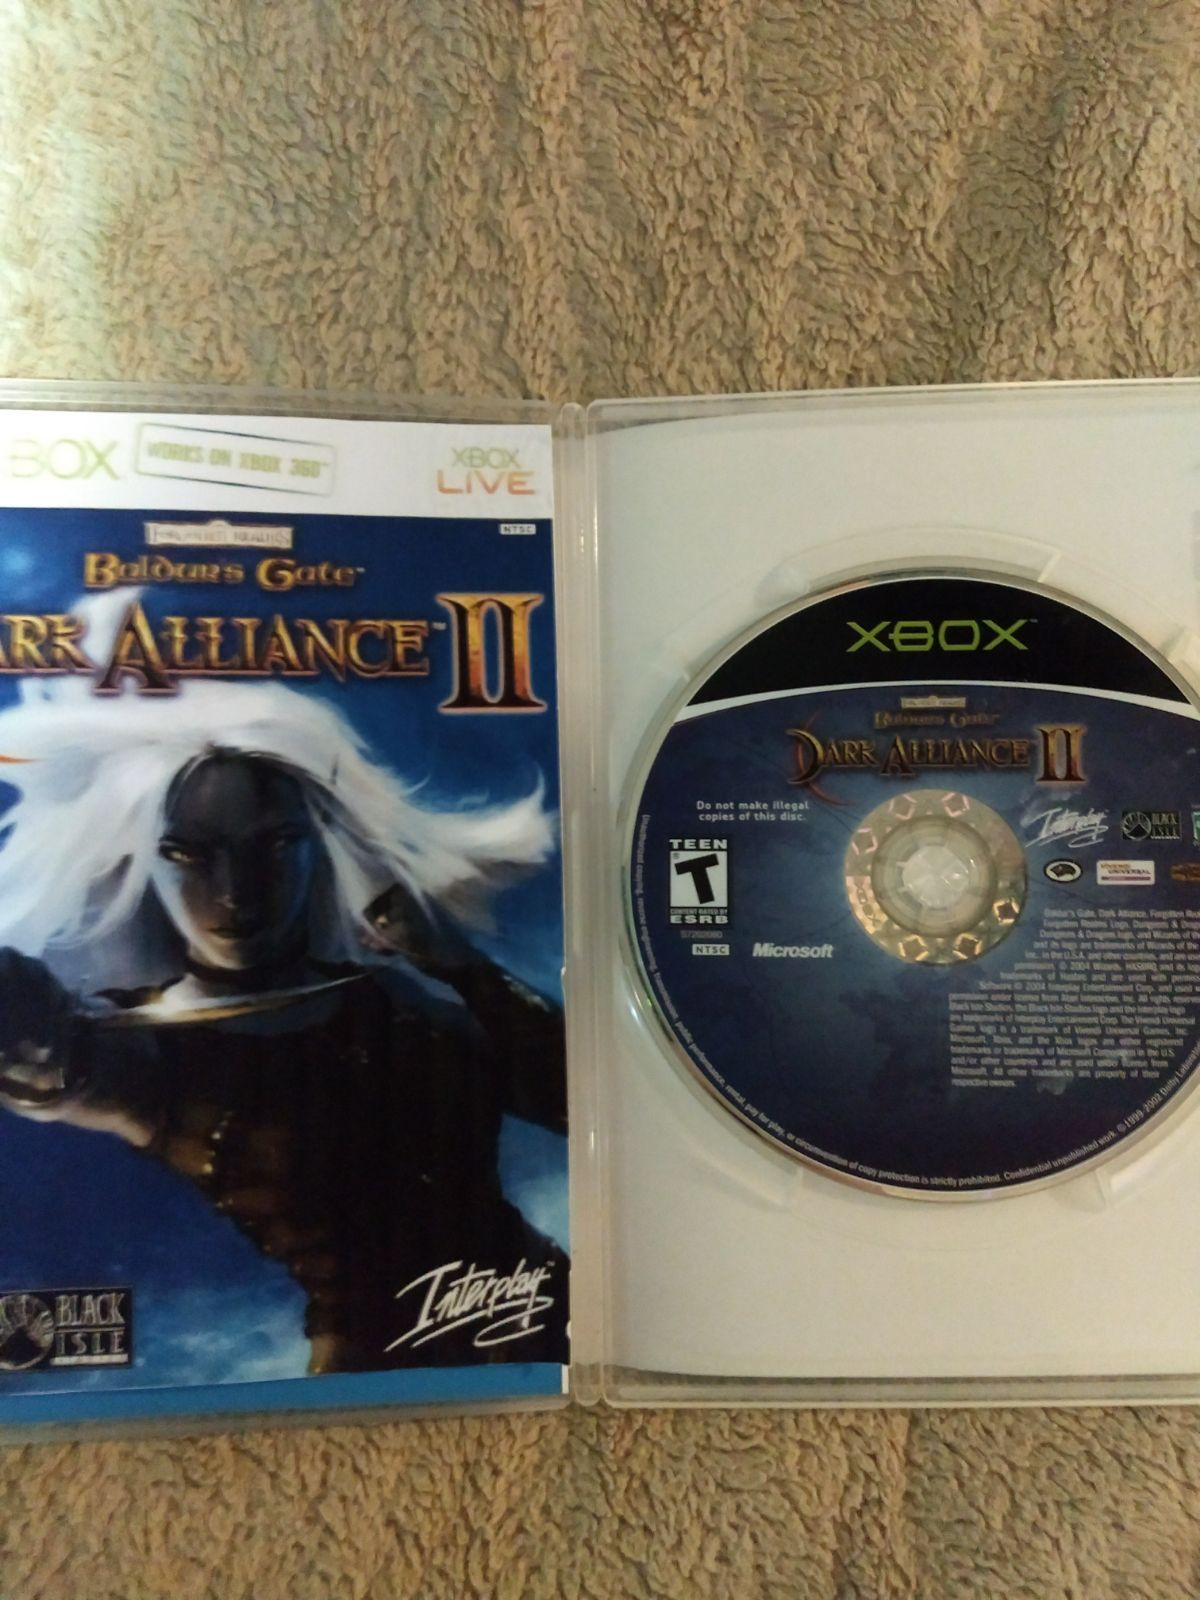 Dark Alliance 2 Game For The Original Xbox And Xbox 360 Game Is